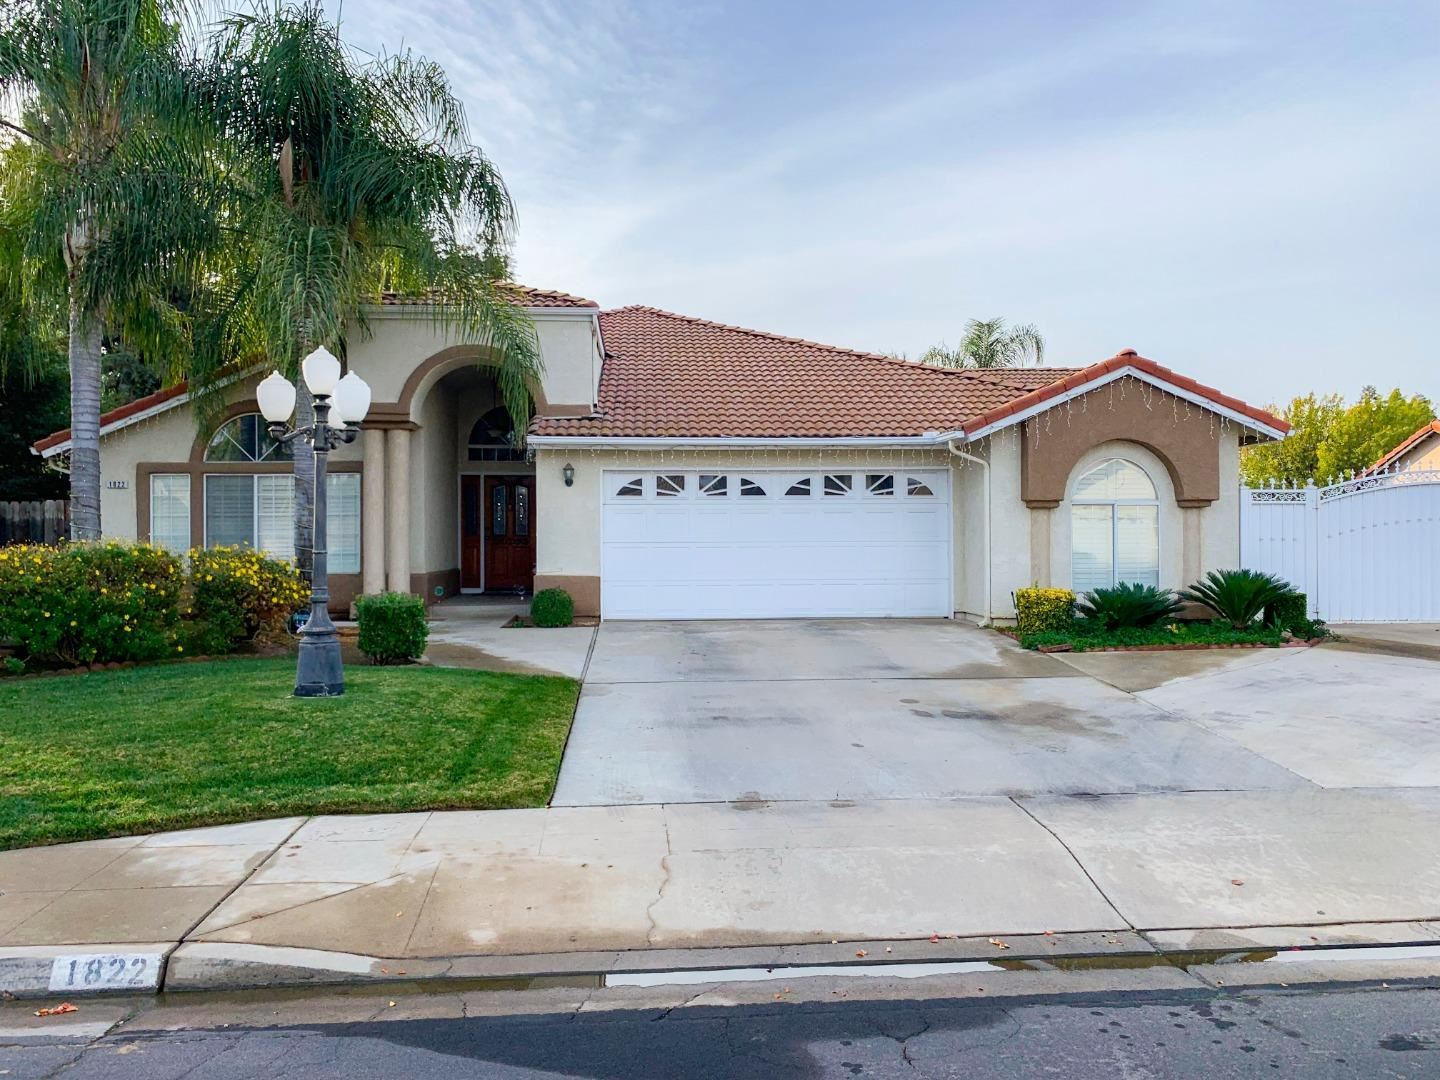 Photo for 1822 Morris AVE, CLOVIS, CA 93611 (MLS # ML81776322)